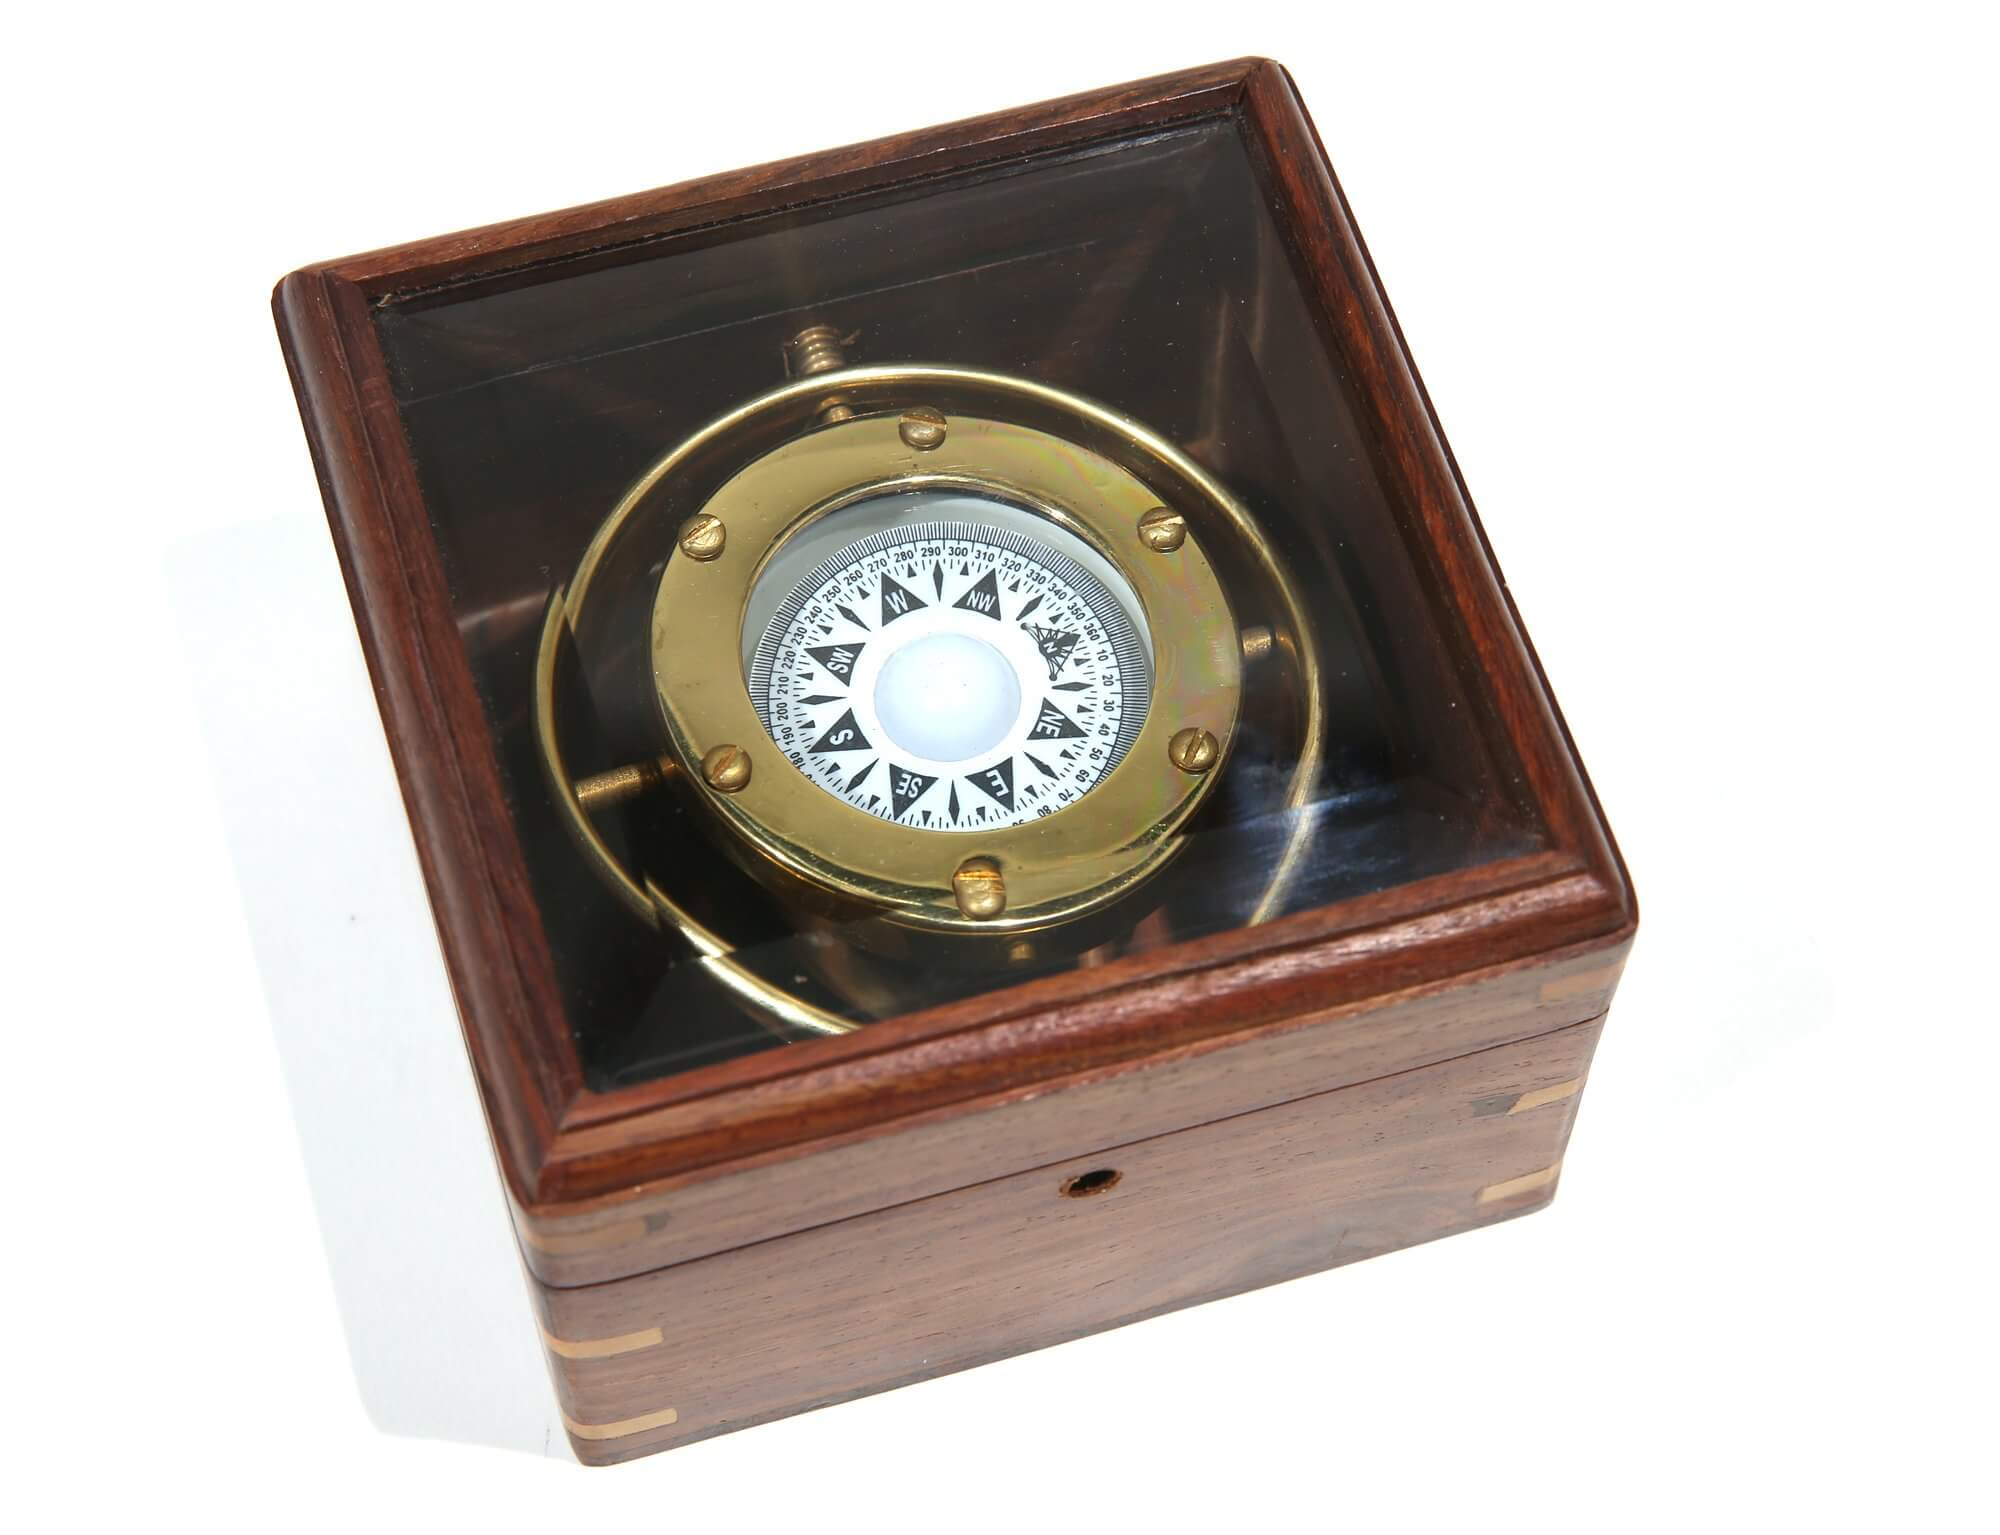 Sea captain's compass